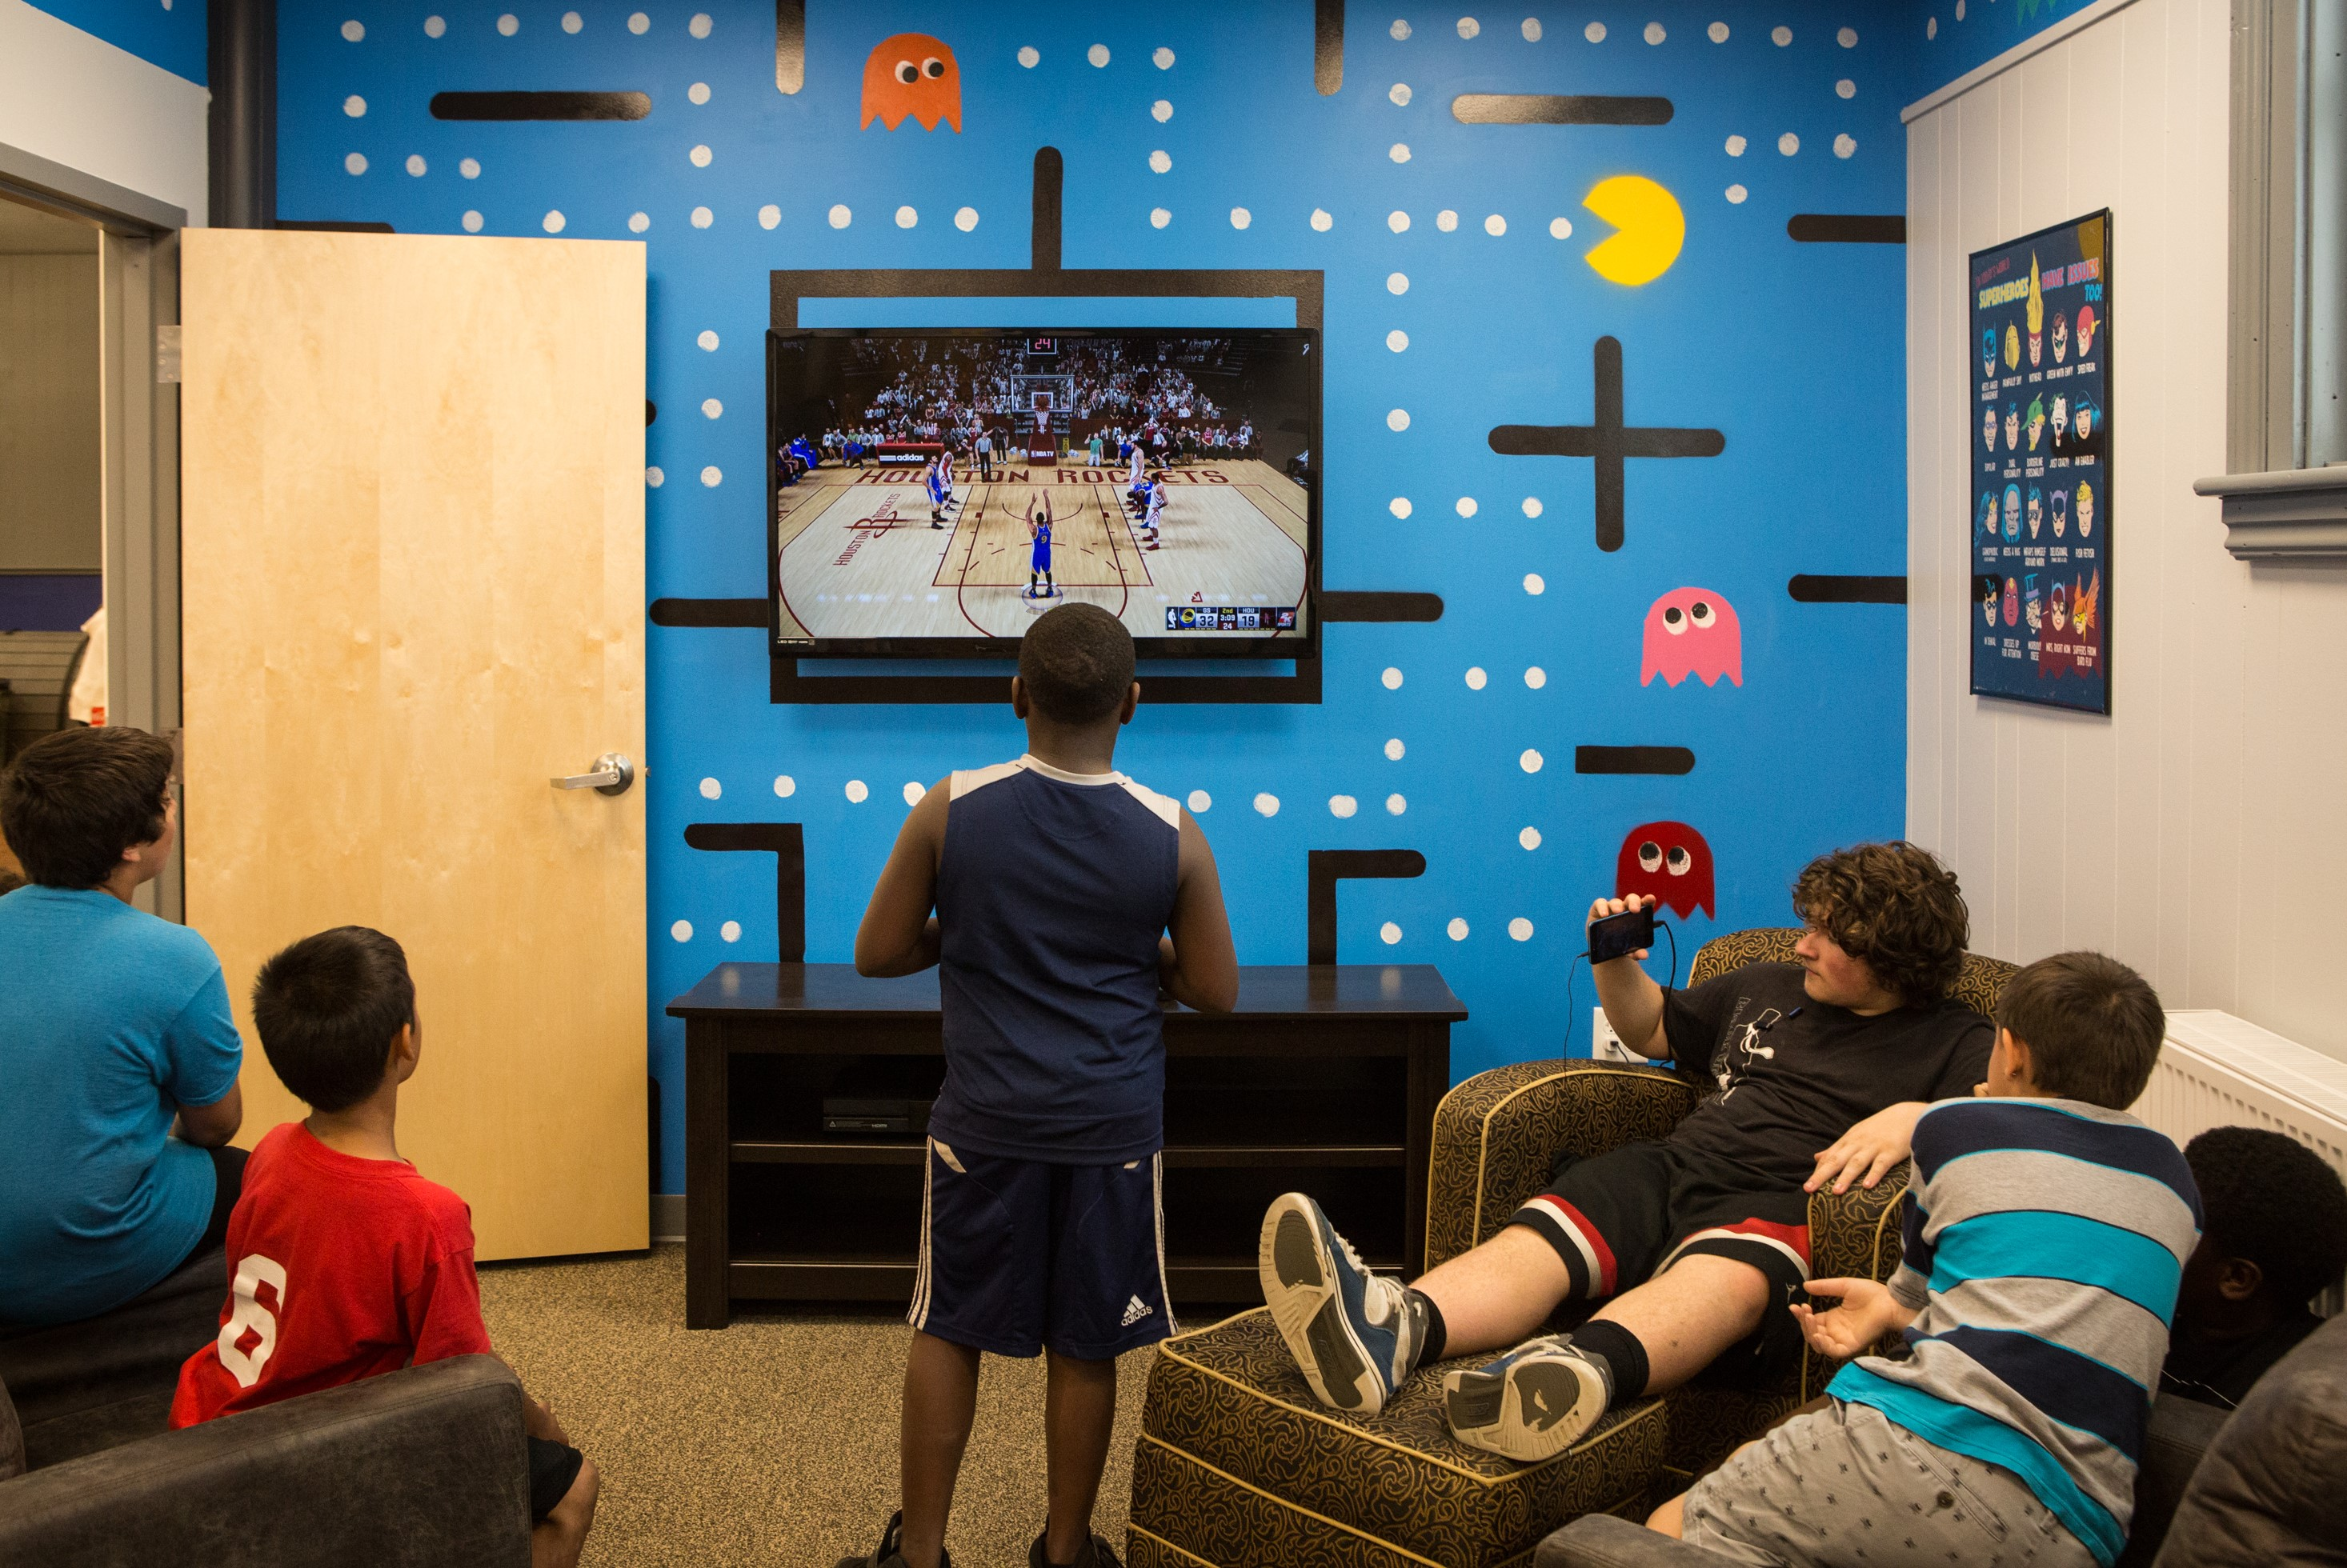 MPAL students wasted no time before utilizing their new game room located off the community room in the Michael Briggs Community Center which opened its doors for the first time since February when Building on Hope's extreme-makeover style renovation began. (Photo: John Benford Photography)